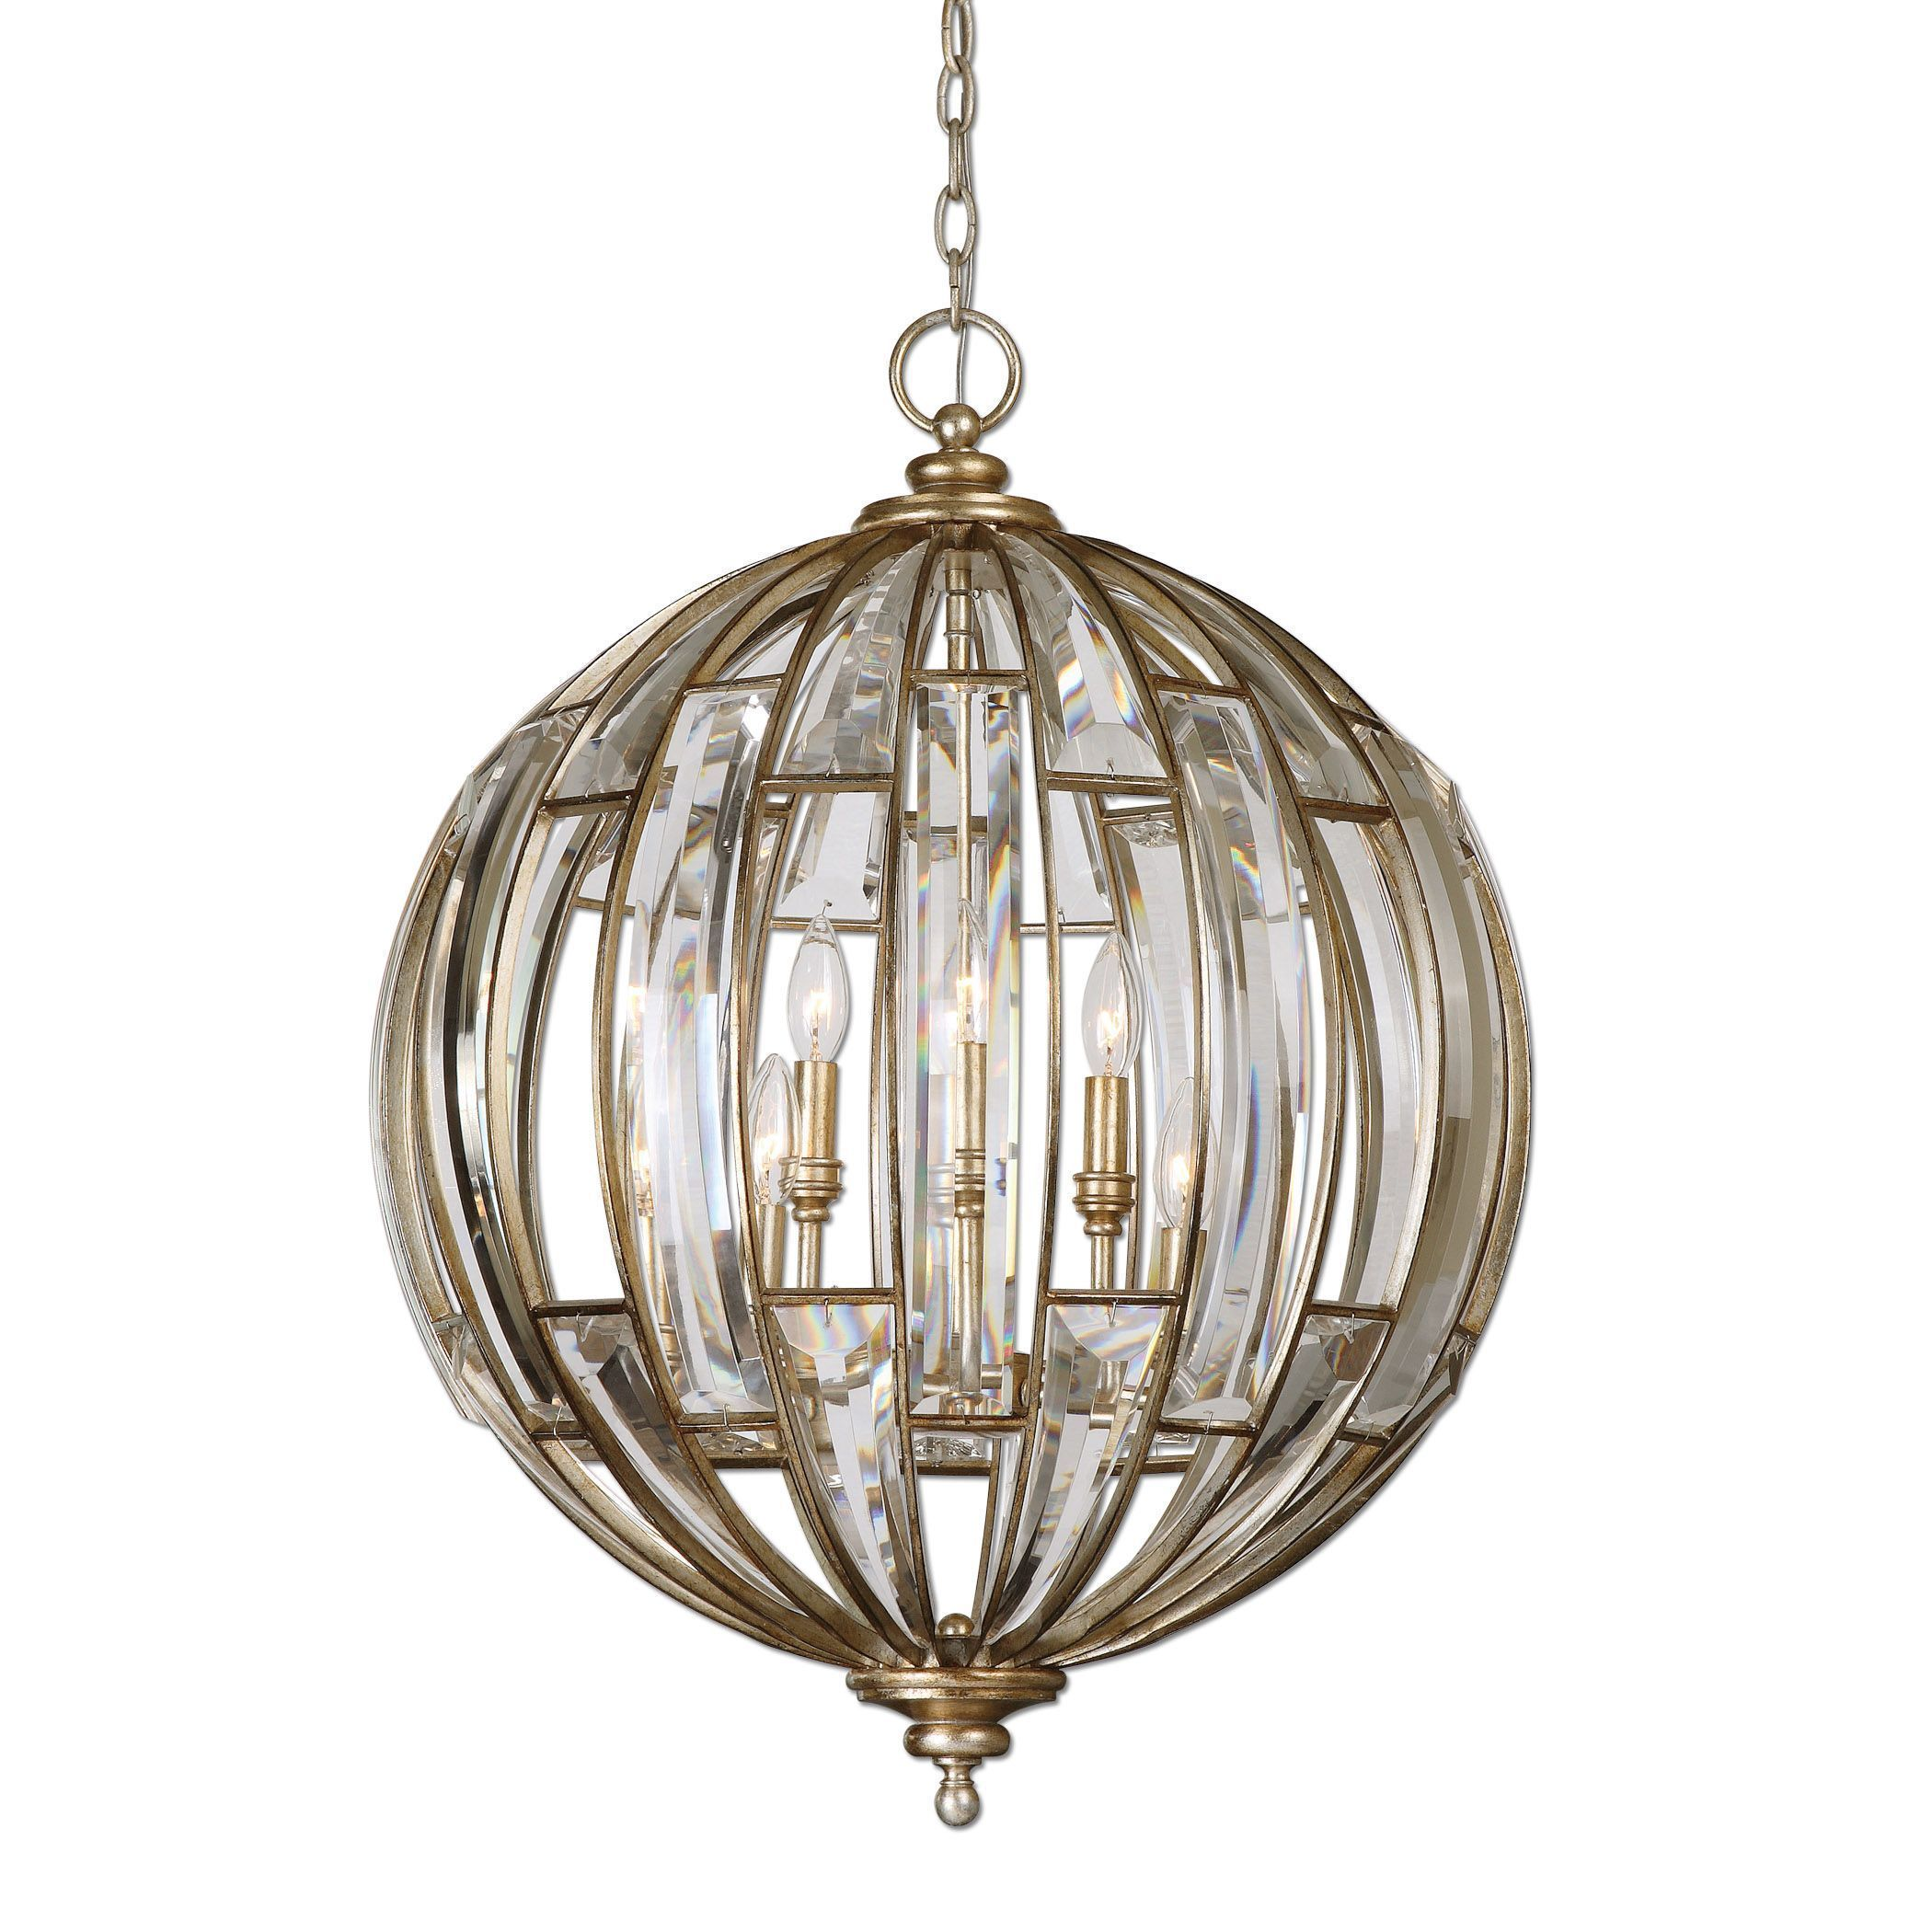 A Statement Of Sumptuous Elegance A Sphere Of Beveled Crystals